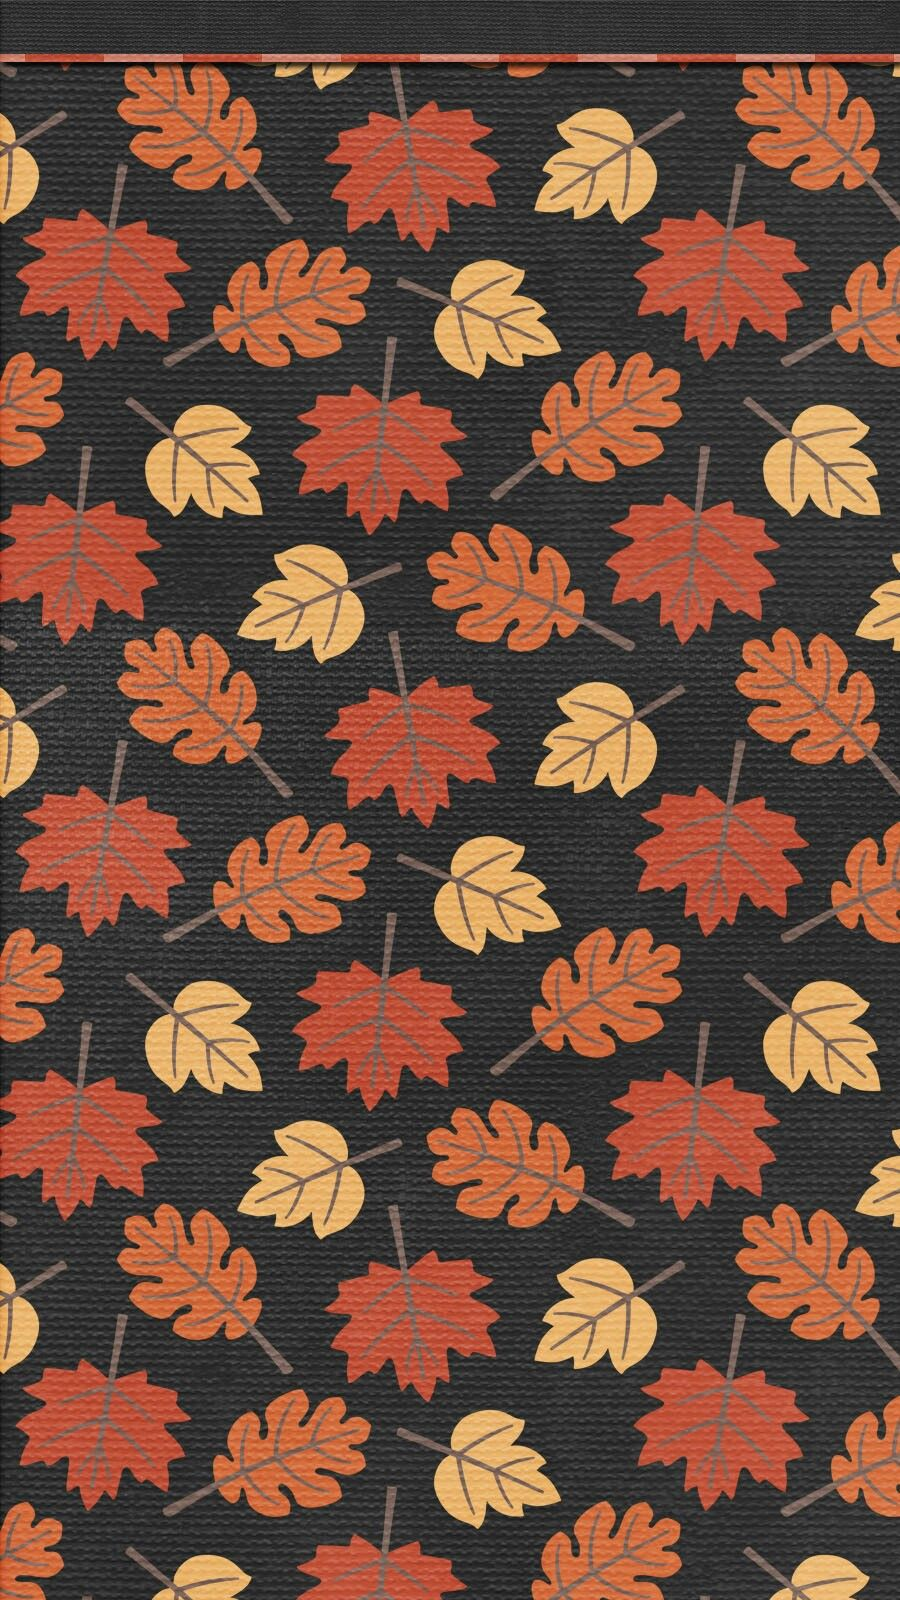 Autumn Wallpaper Iphone Android Theme Cute Paper